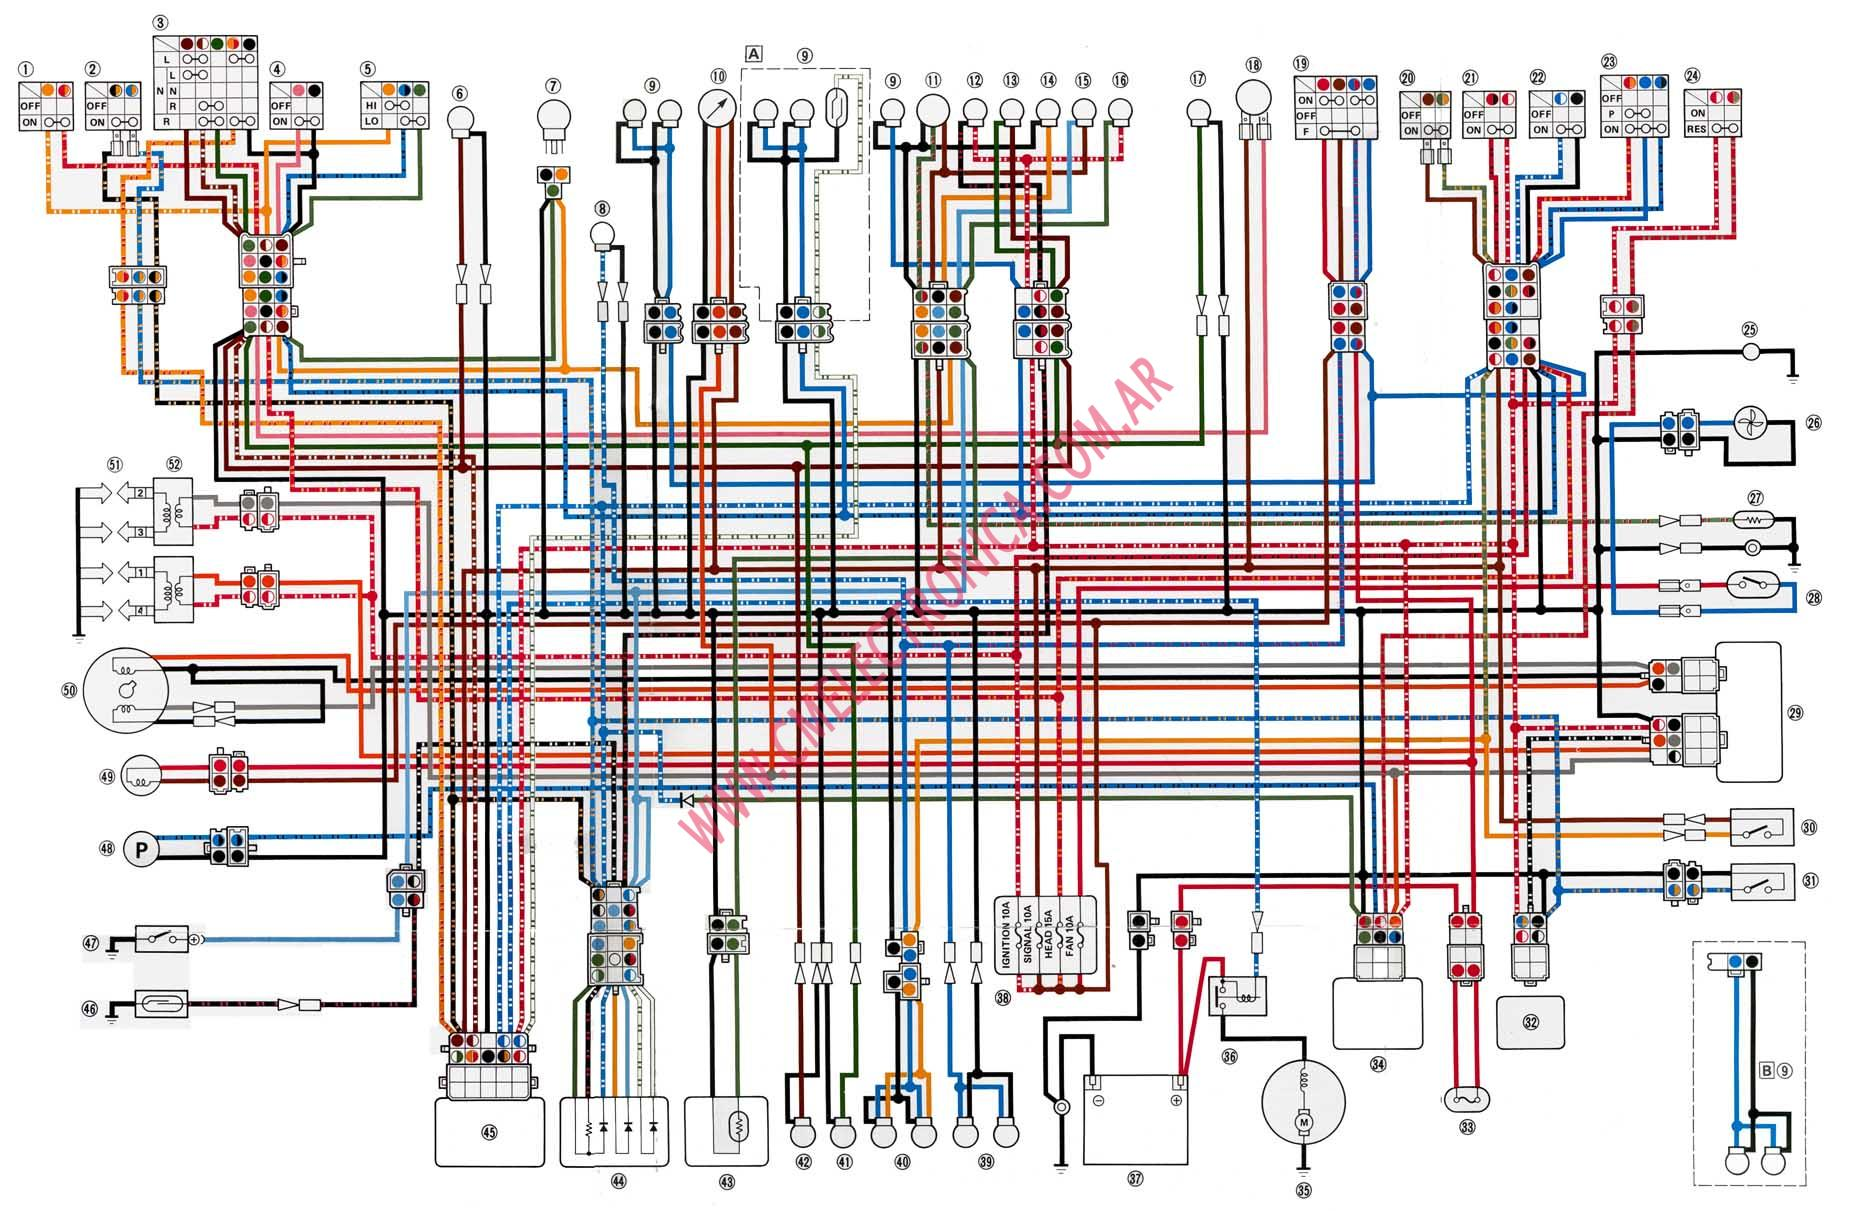 1982 Yamaha Virago 920 Wiring Diagram from www.cmelectronica.com.ar